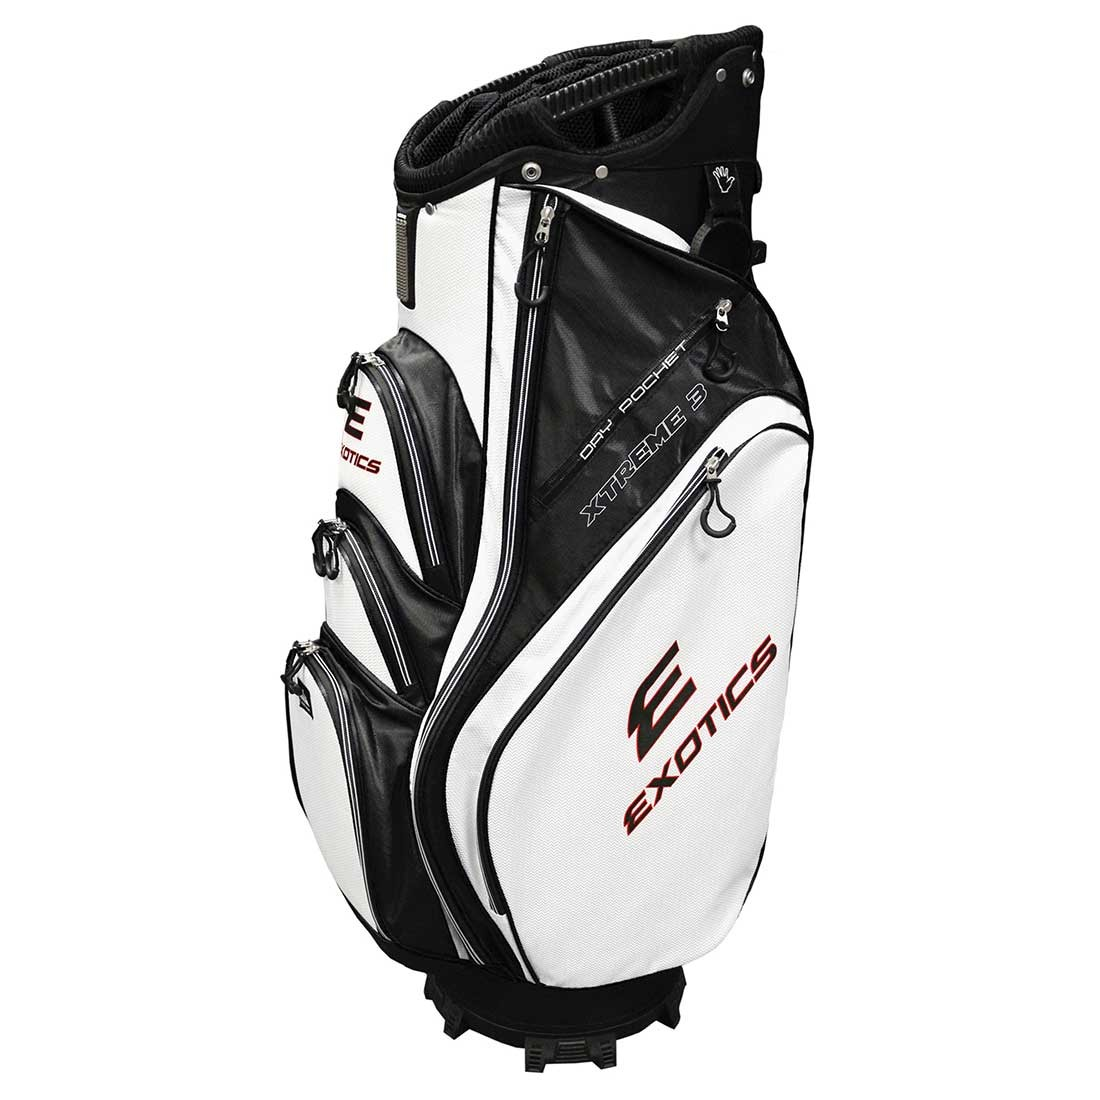 Tour Edge Women's Exotics Xtreme 3 Cart Bag Black/White